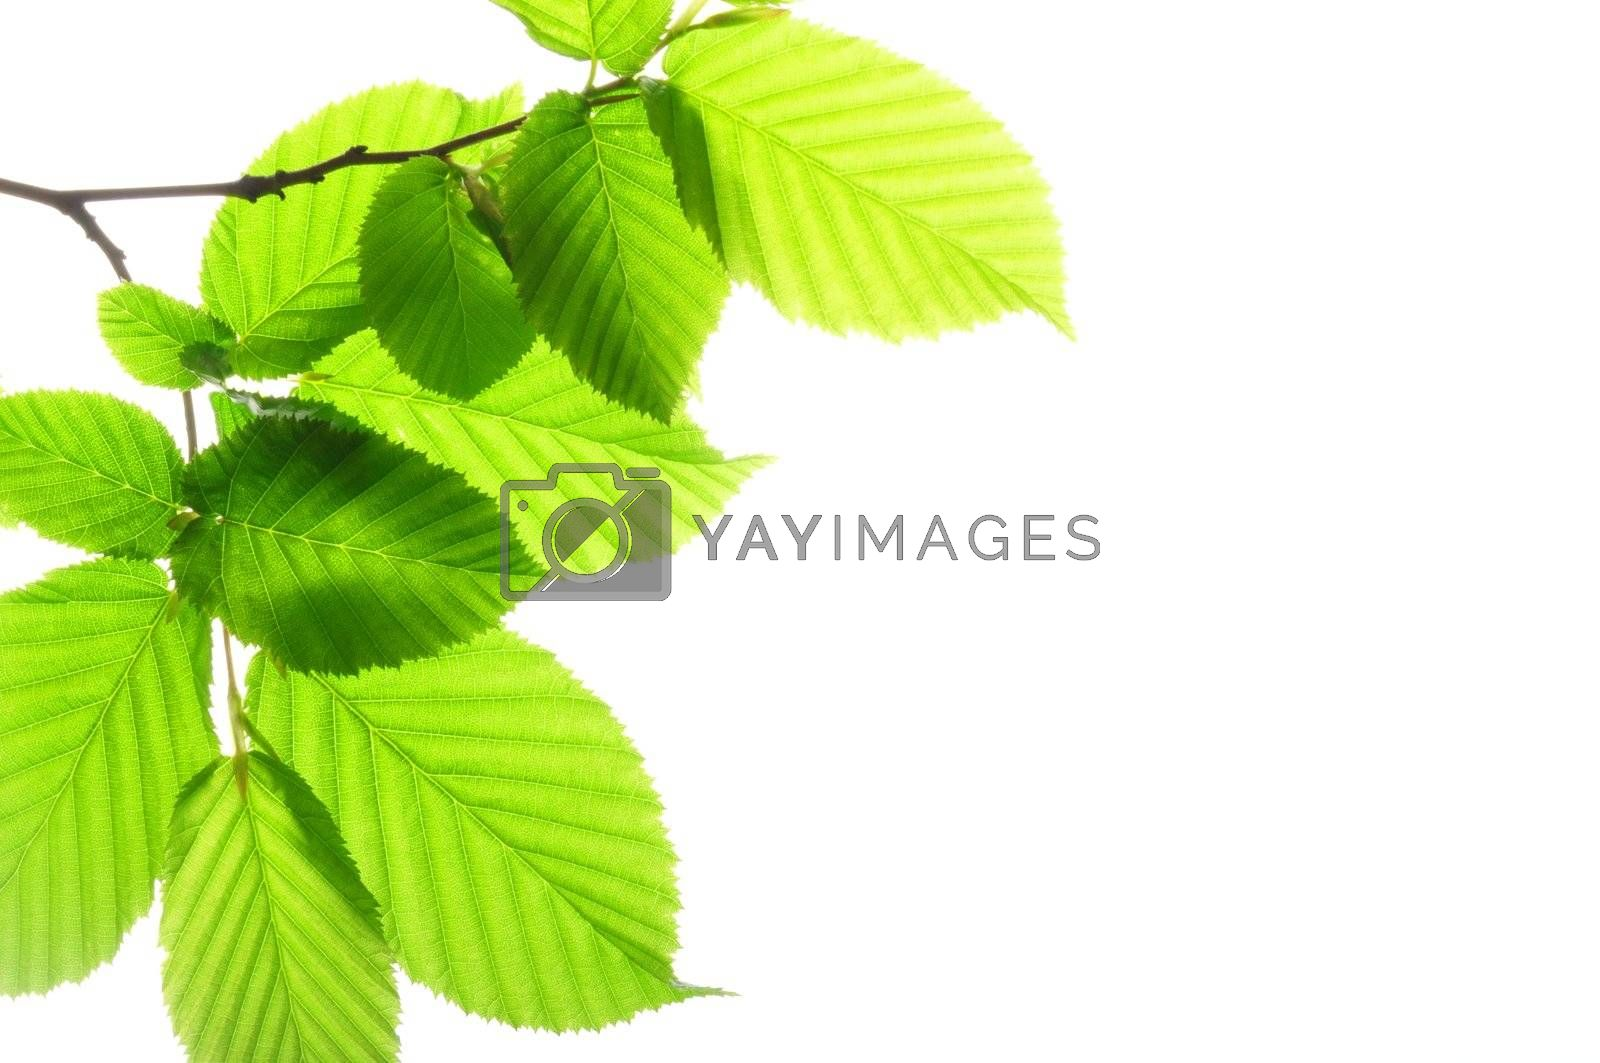 Royalty free image of green leaves by gunnar3000